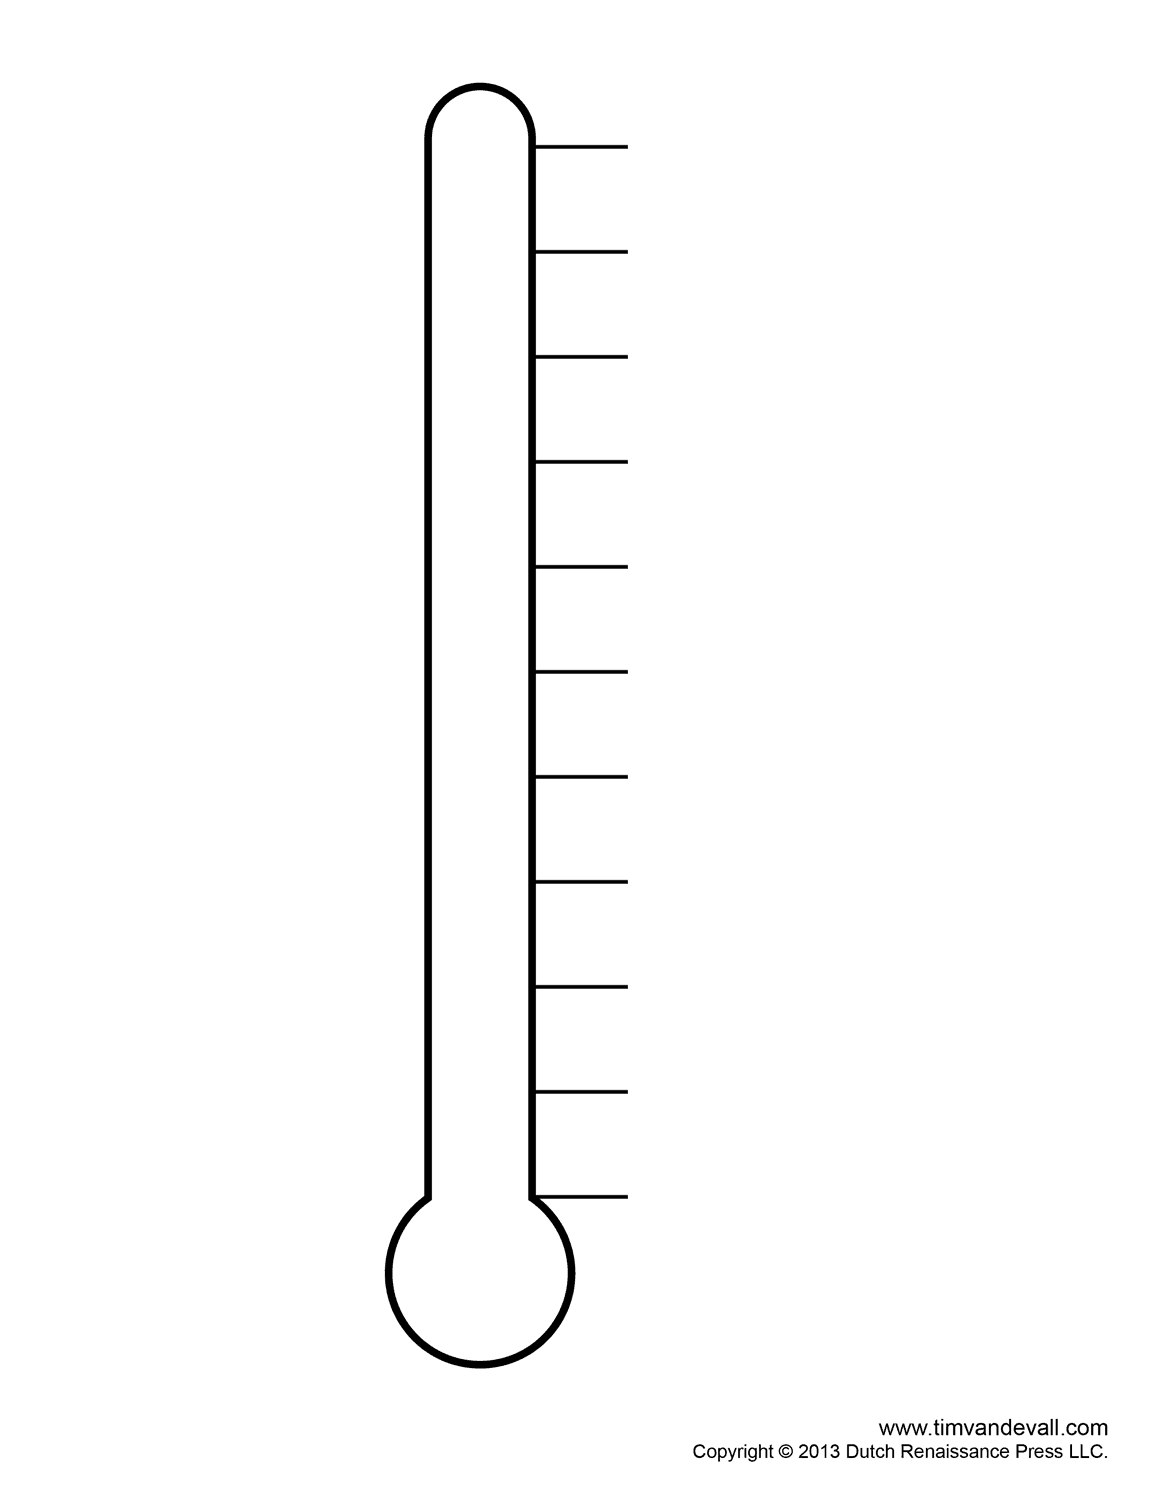 Fundraising thermometer templates for fundraising events for Free fundraiser thermometer template